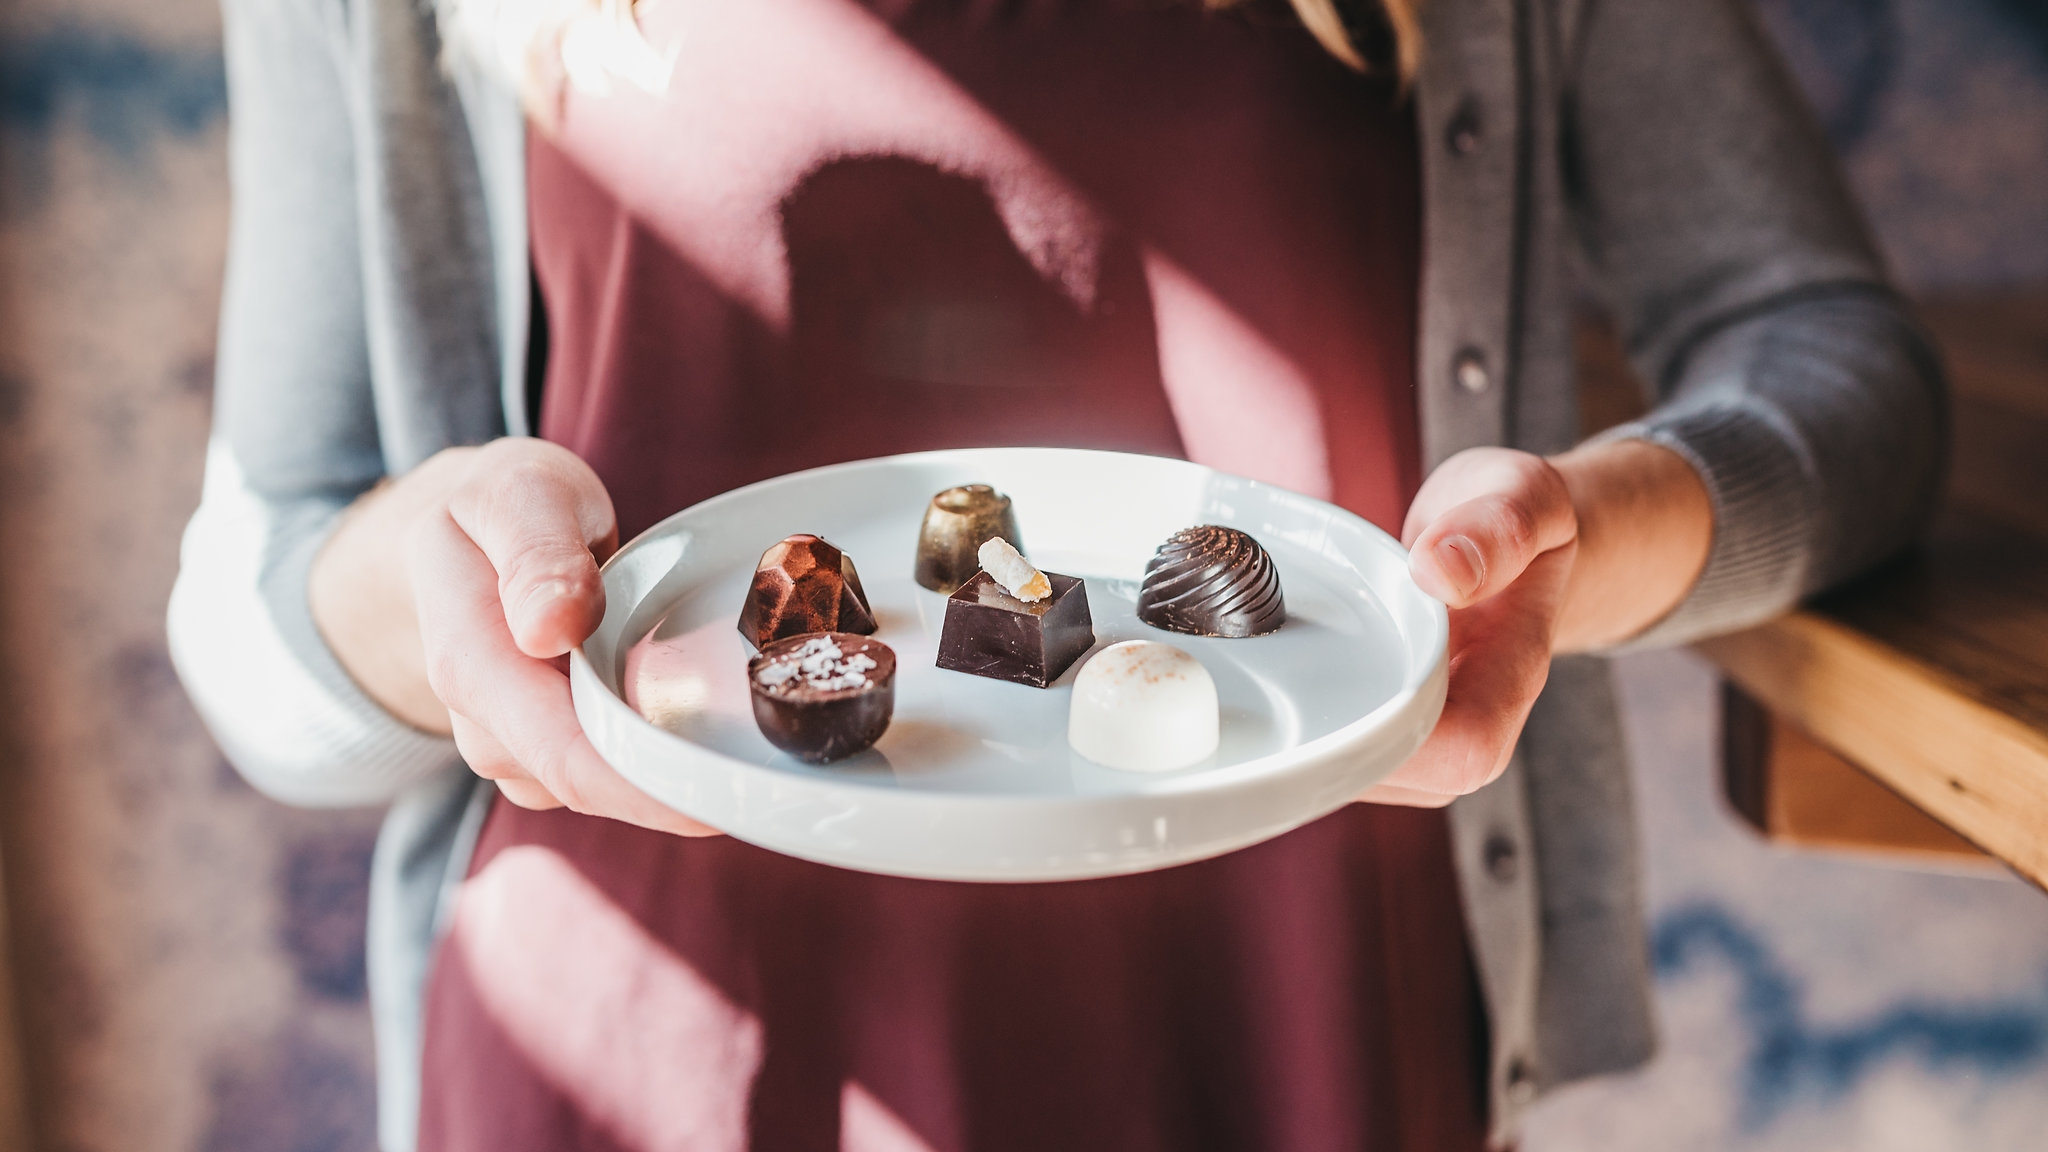 Their chocolates are masterfully made. Courtesy photo